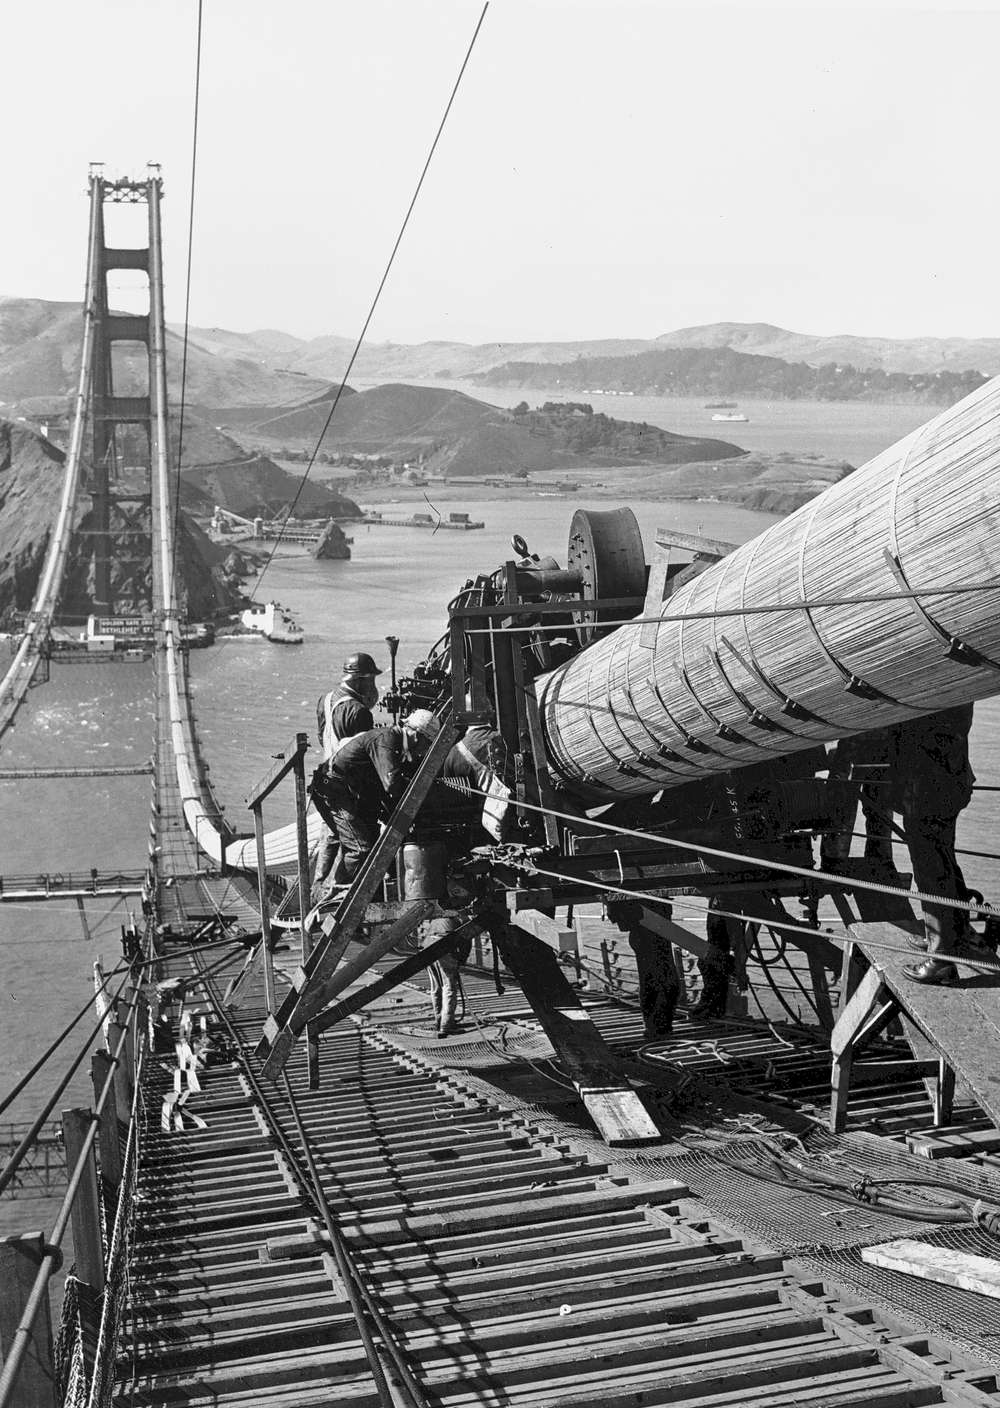 Cable is wrapped in 1935. A total of 80,000 mi. (128,747 km) of wire was used in the two main cables passing over the tops of the towers. (Fleet Irvine Photomurals/Photo)